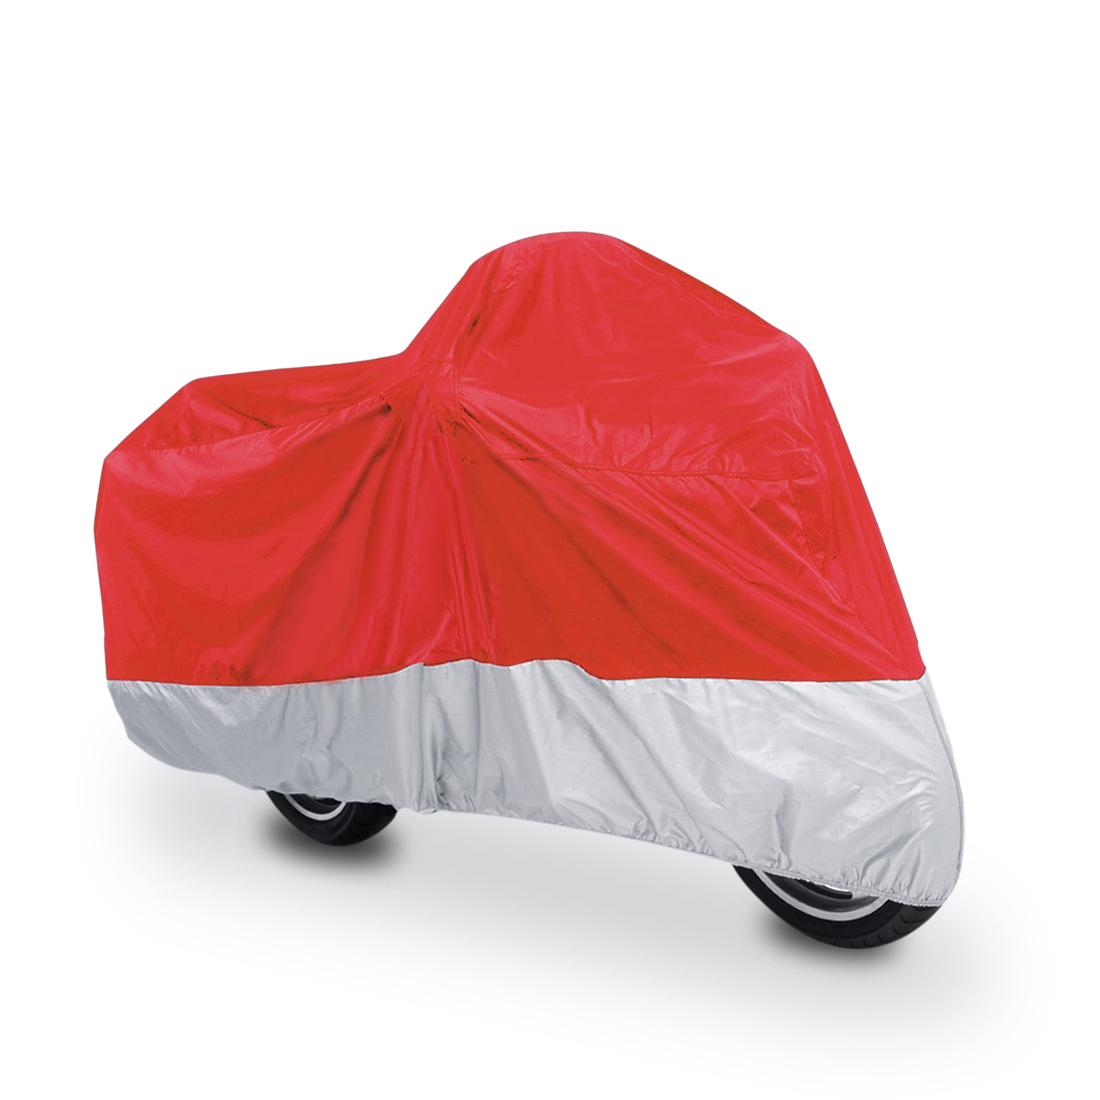 XL 180T Rain Dust Motorcycle Cover Red+Silver Outdoor Waterproof UV Protector